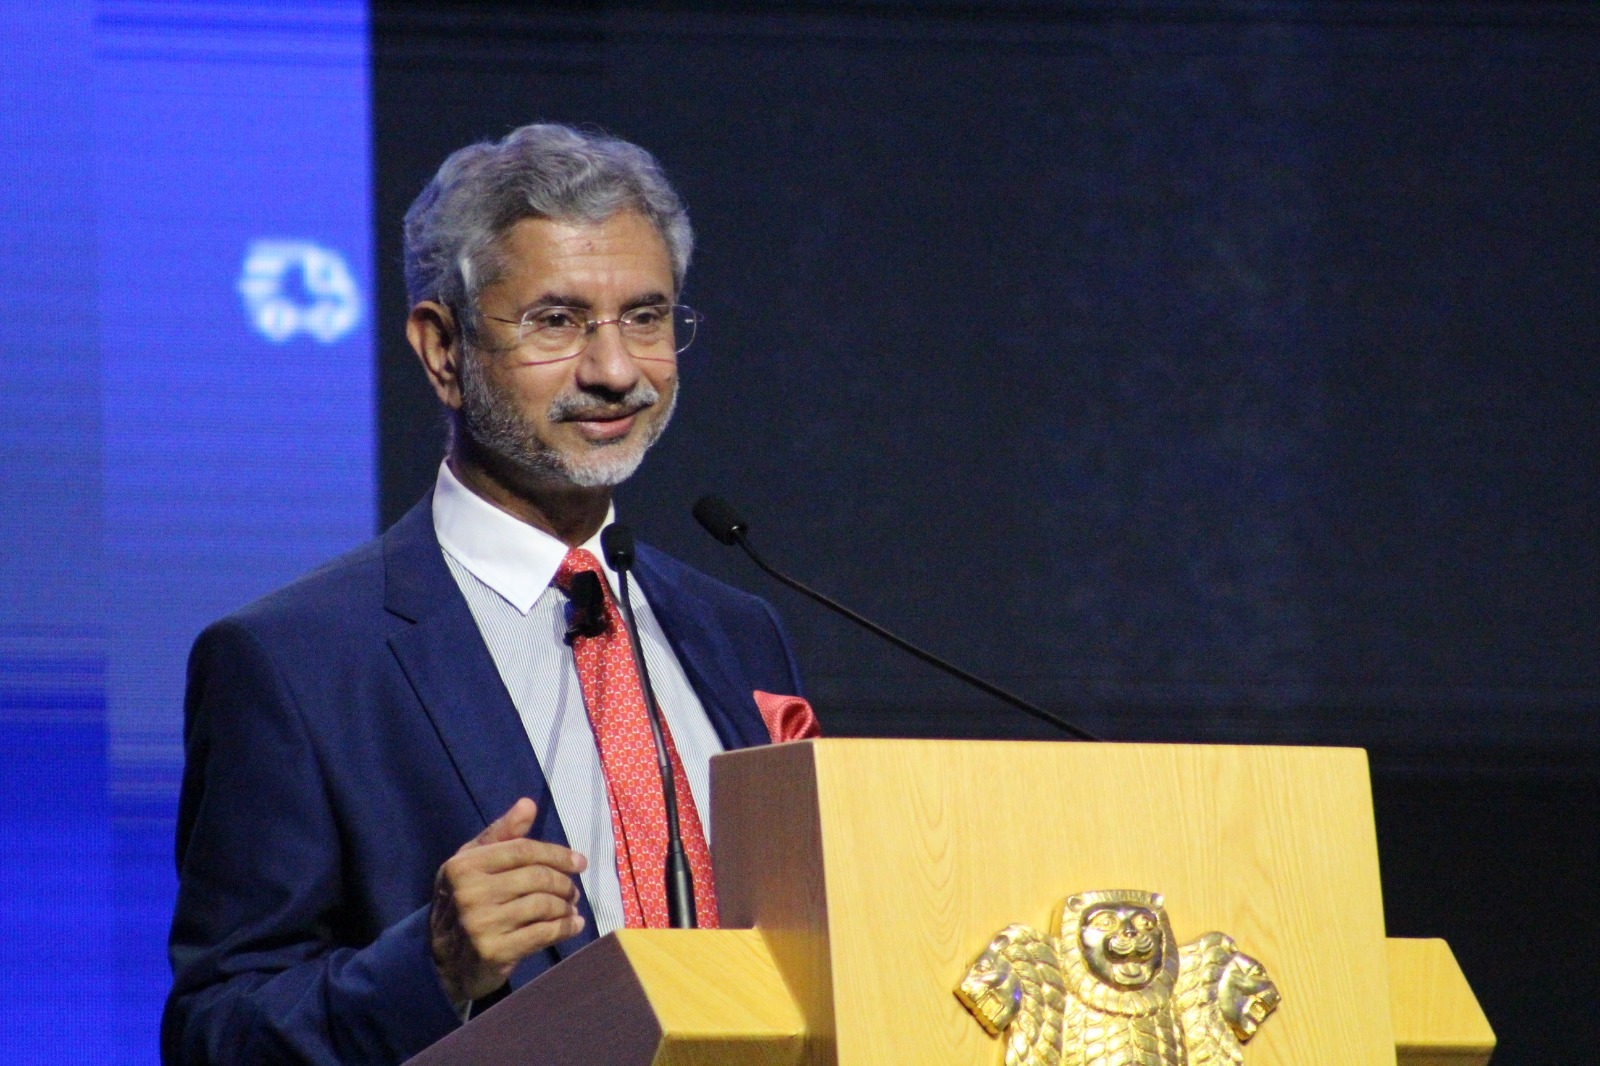 Jaishankar, who served as High Commissioner of India to Singapore from 2007 to 2009, has emphasised the close nature of the ties between India and Singapore throughout his visit.